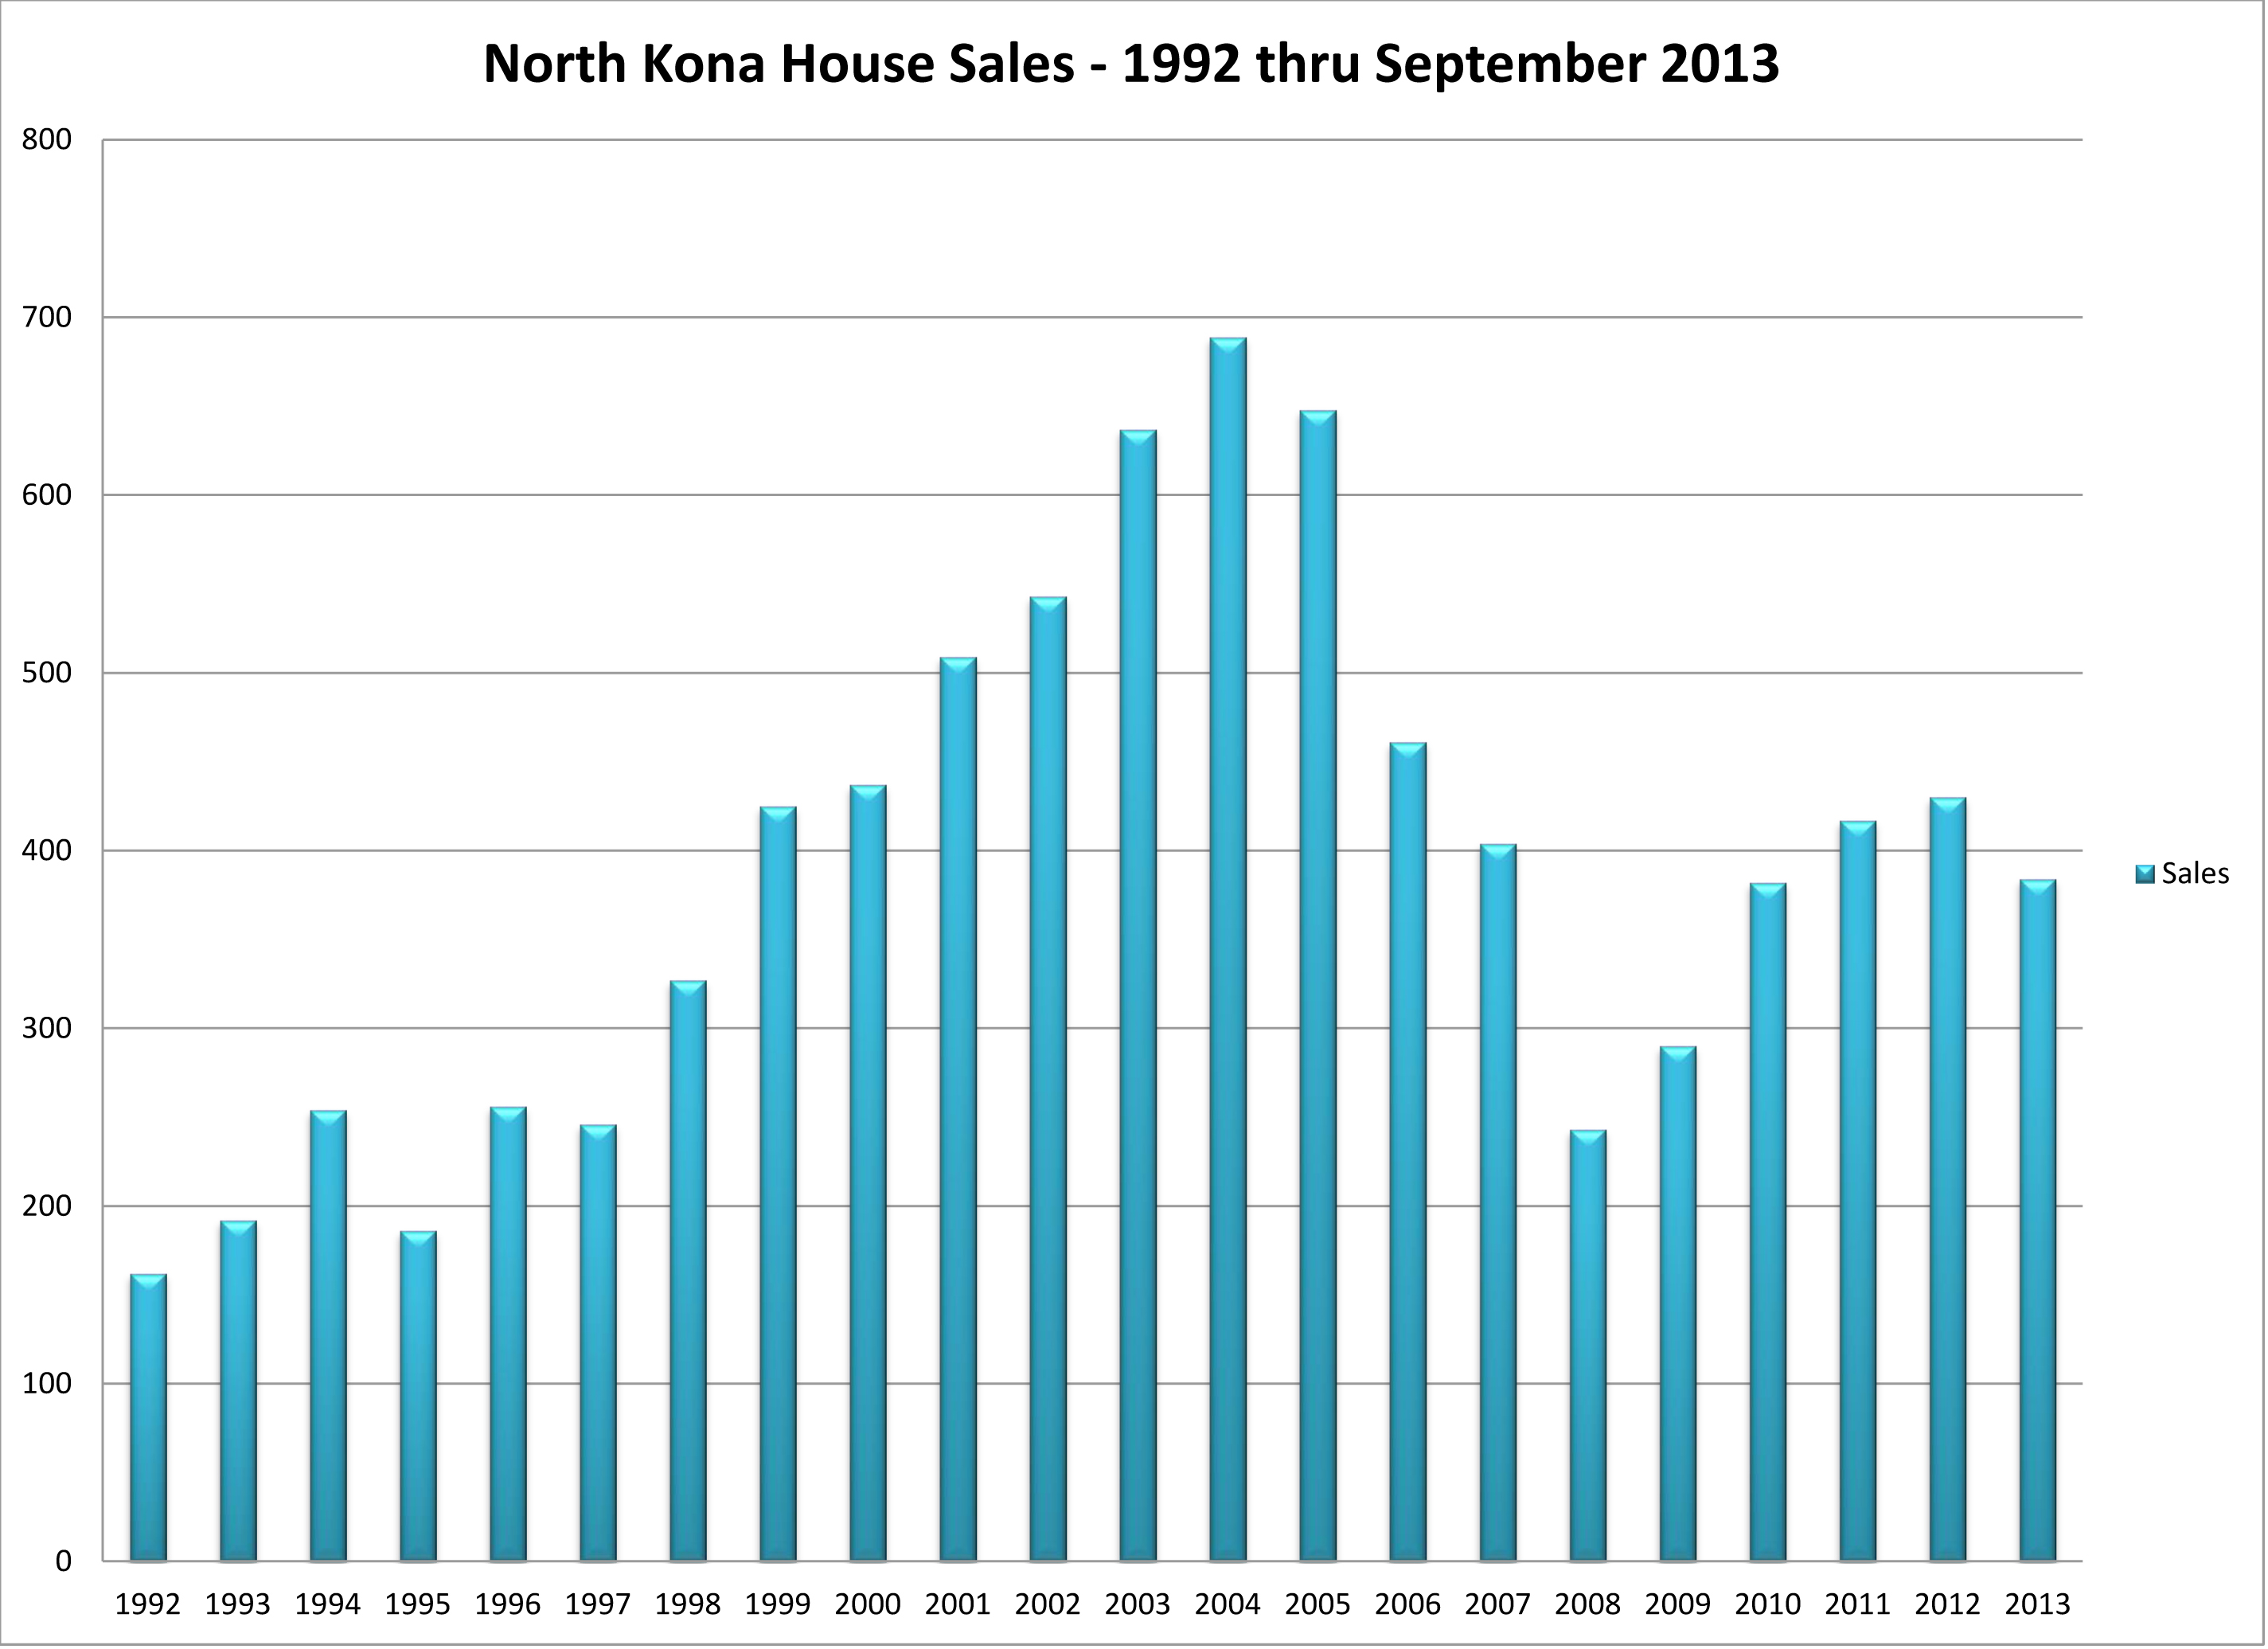 NK House Sales 92 thru 0913 by Y